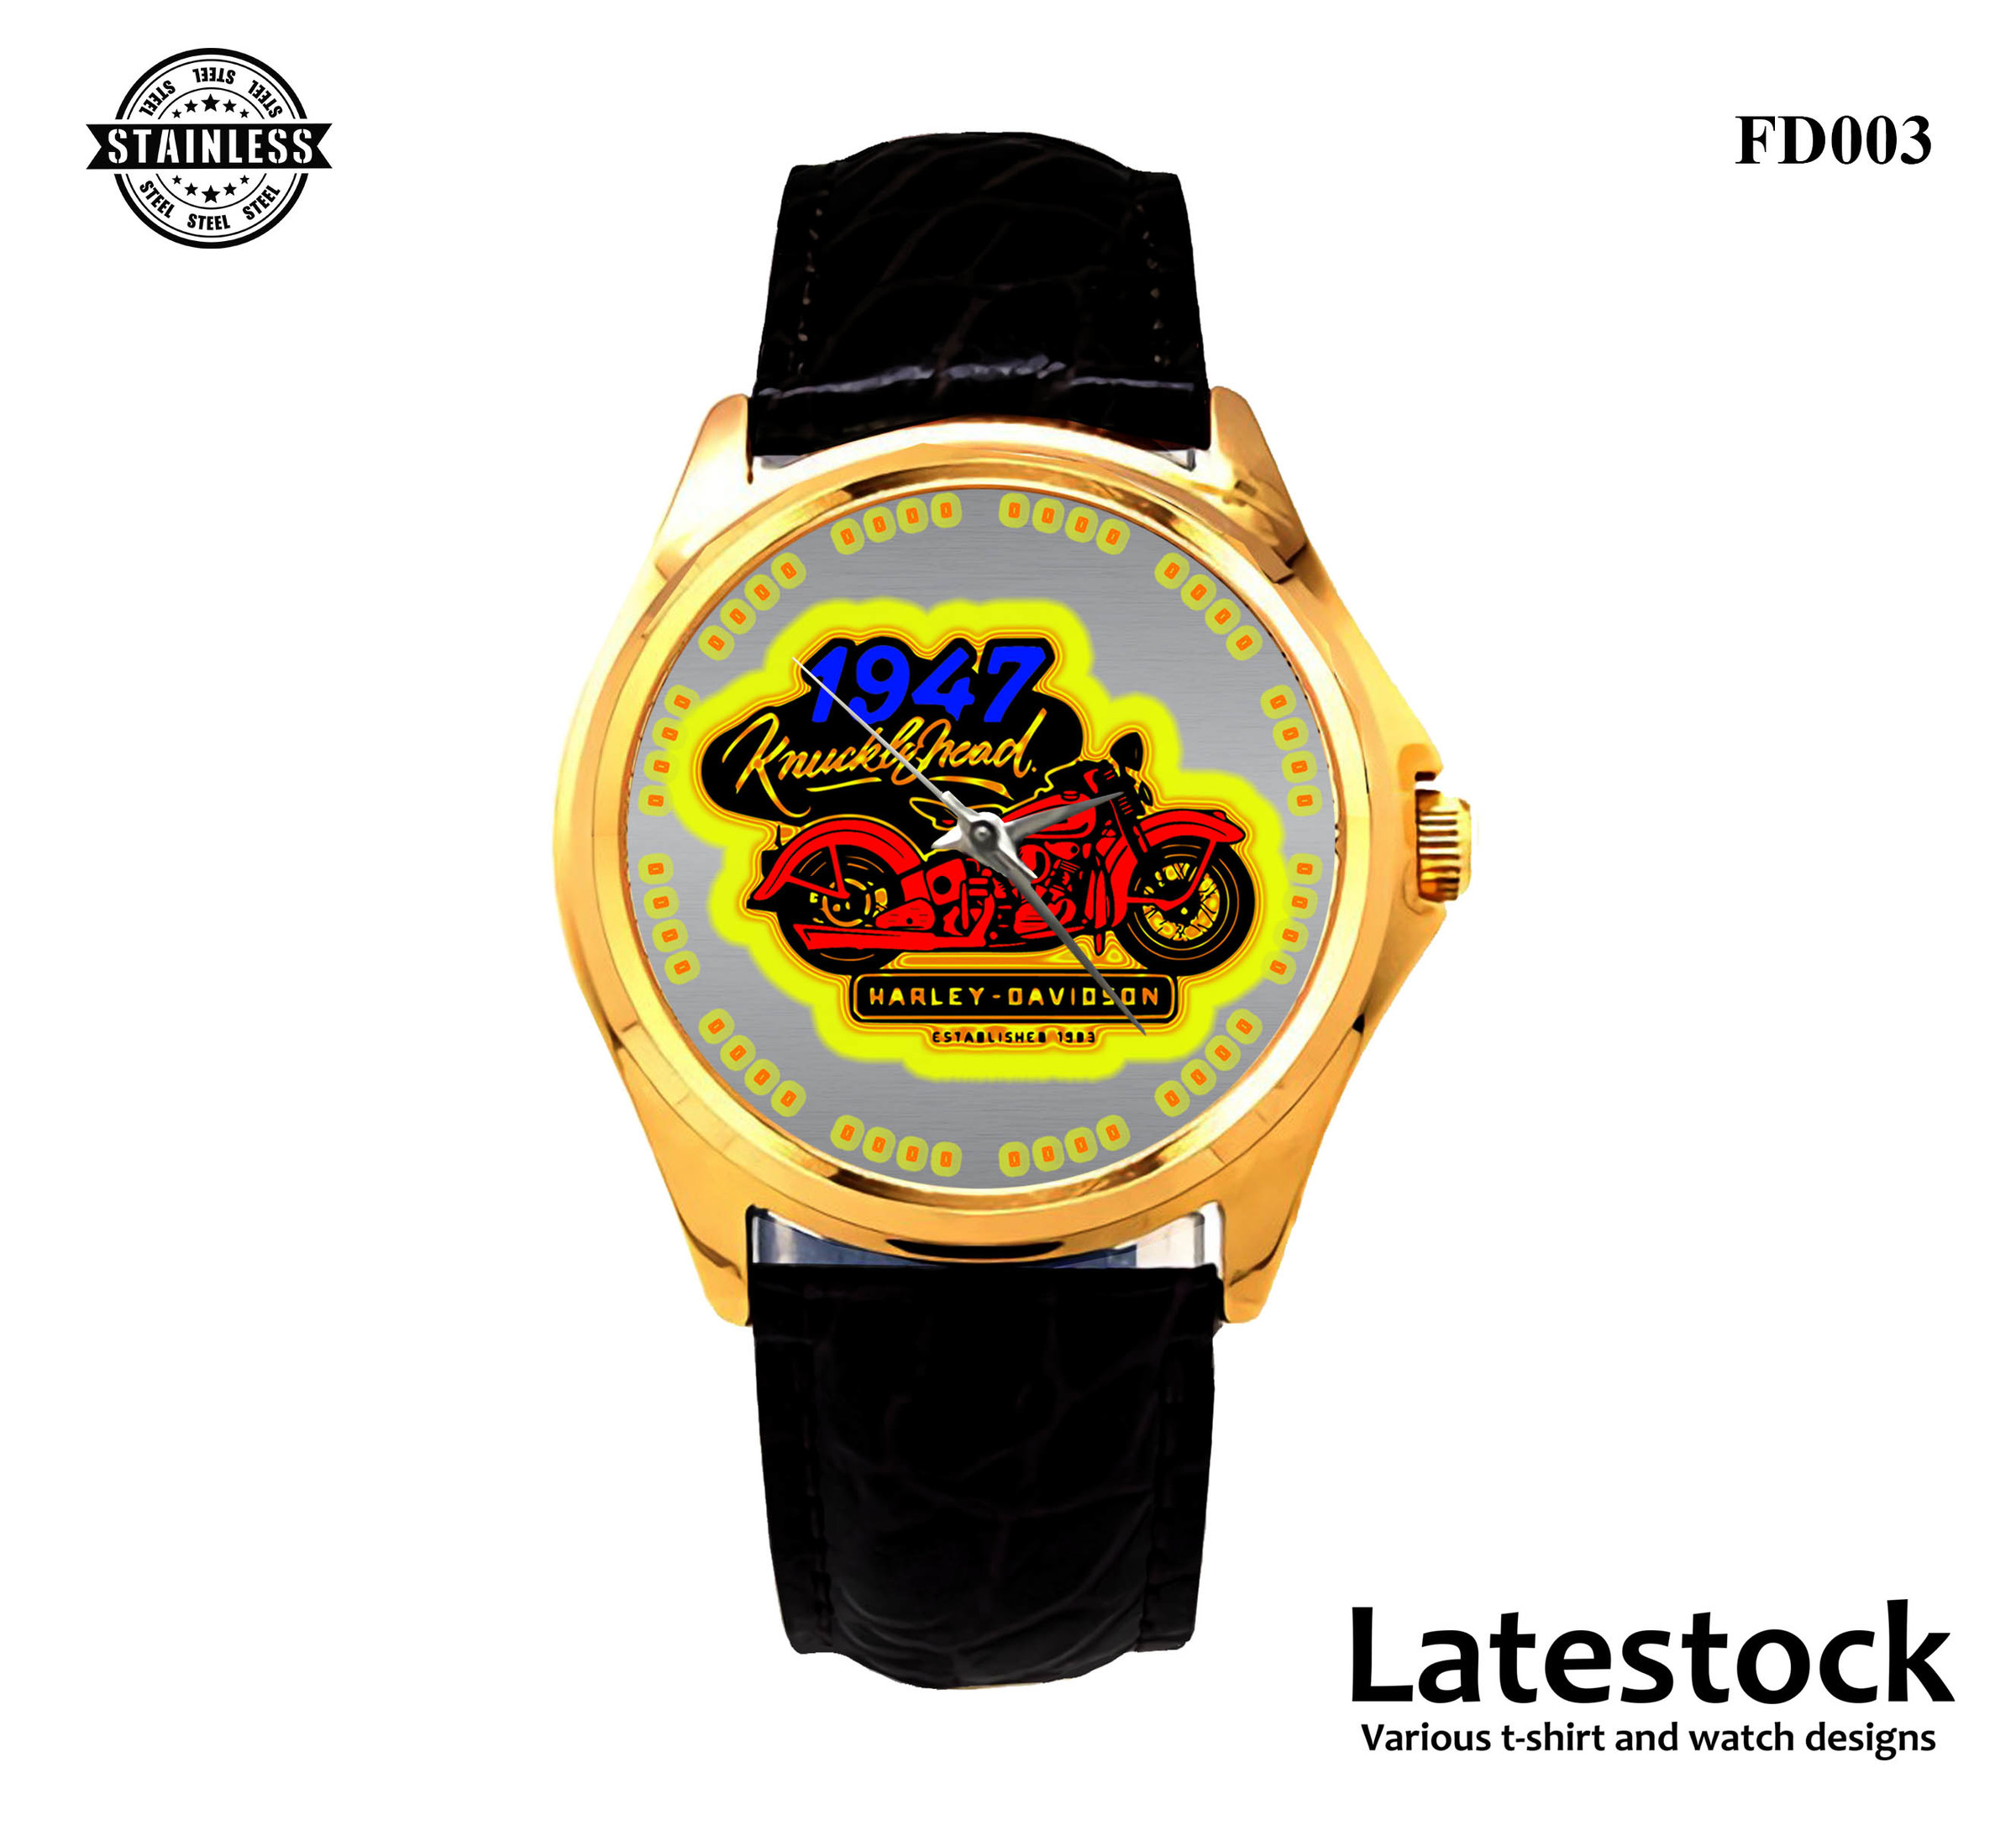 RARE!!! HARLEY-DAVIDSON-MOTORCYCLE-SPORT-METAL-WATCHES LEATHER BAND GOLD.jpg